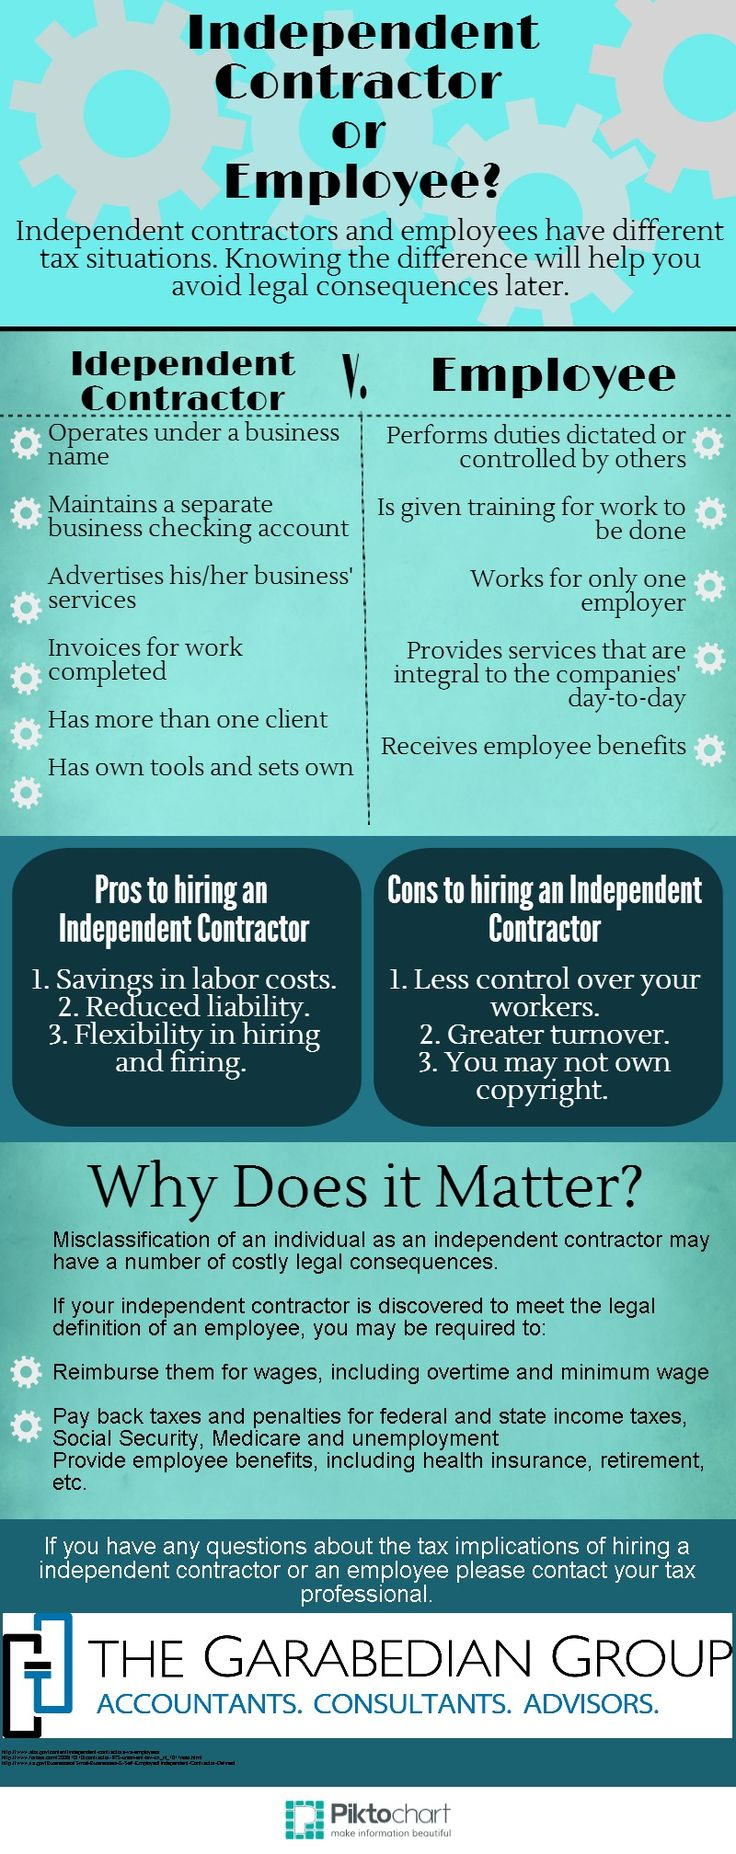 Independent Contractor v. Employees Infographic